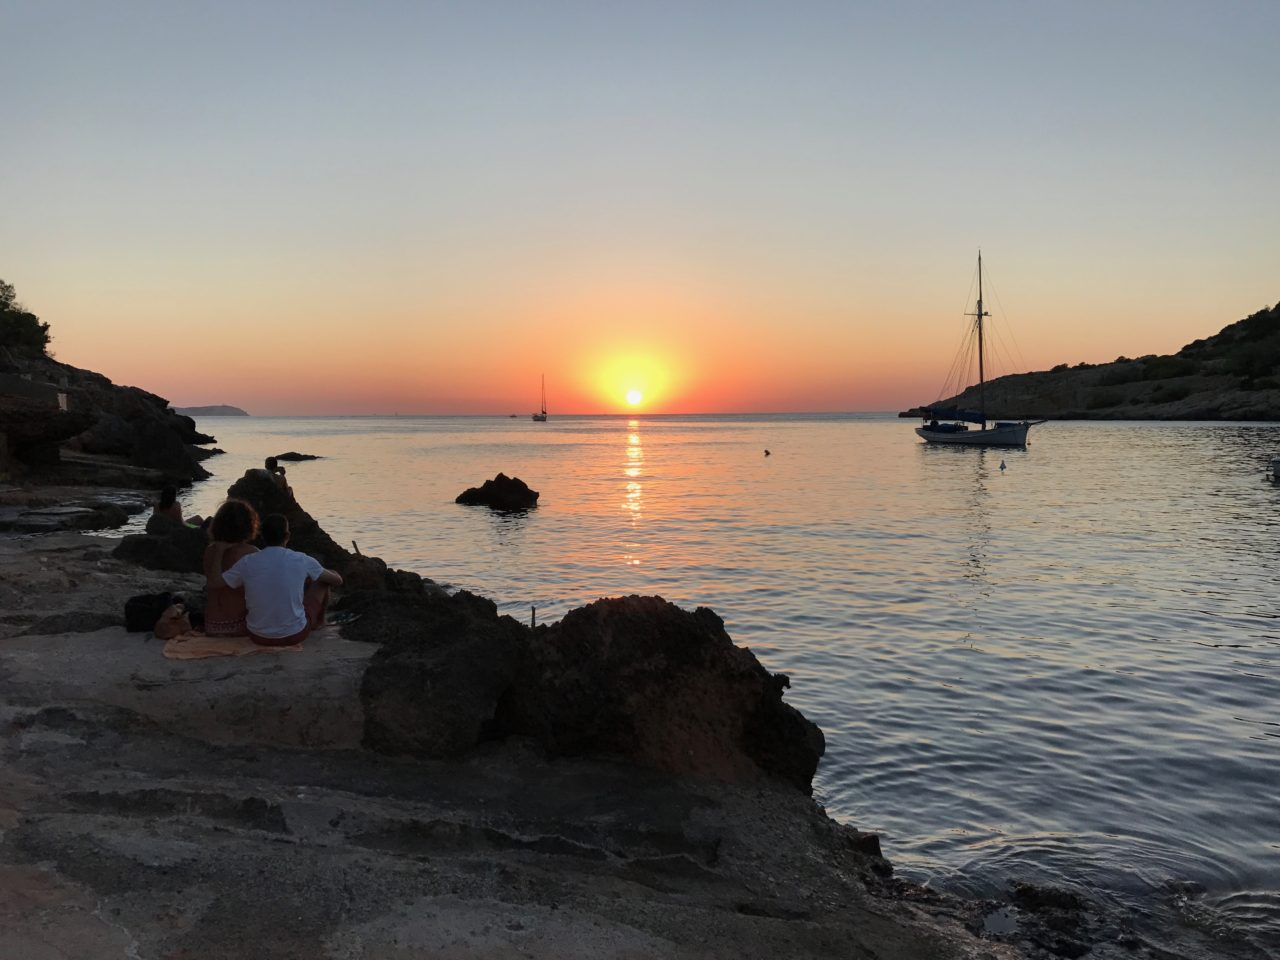 Ocean Sunset With People And Sail Boat